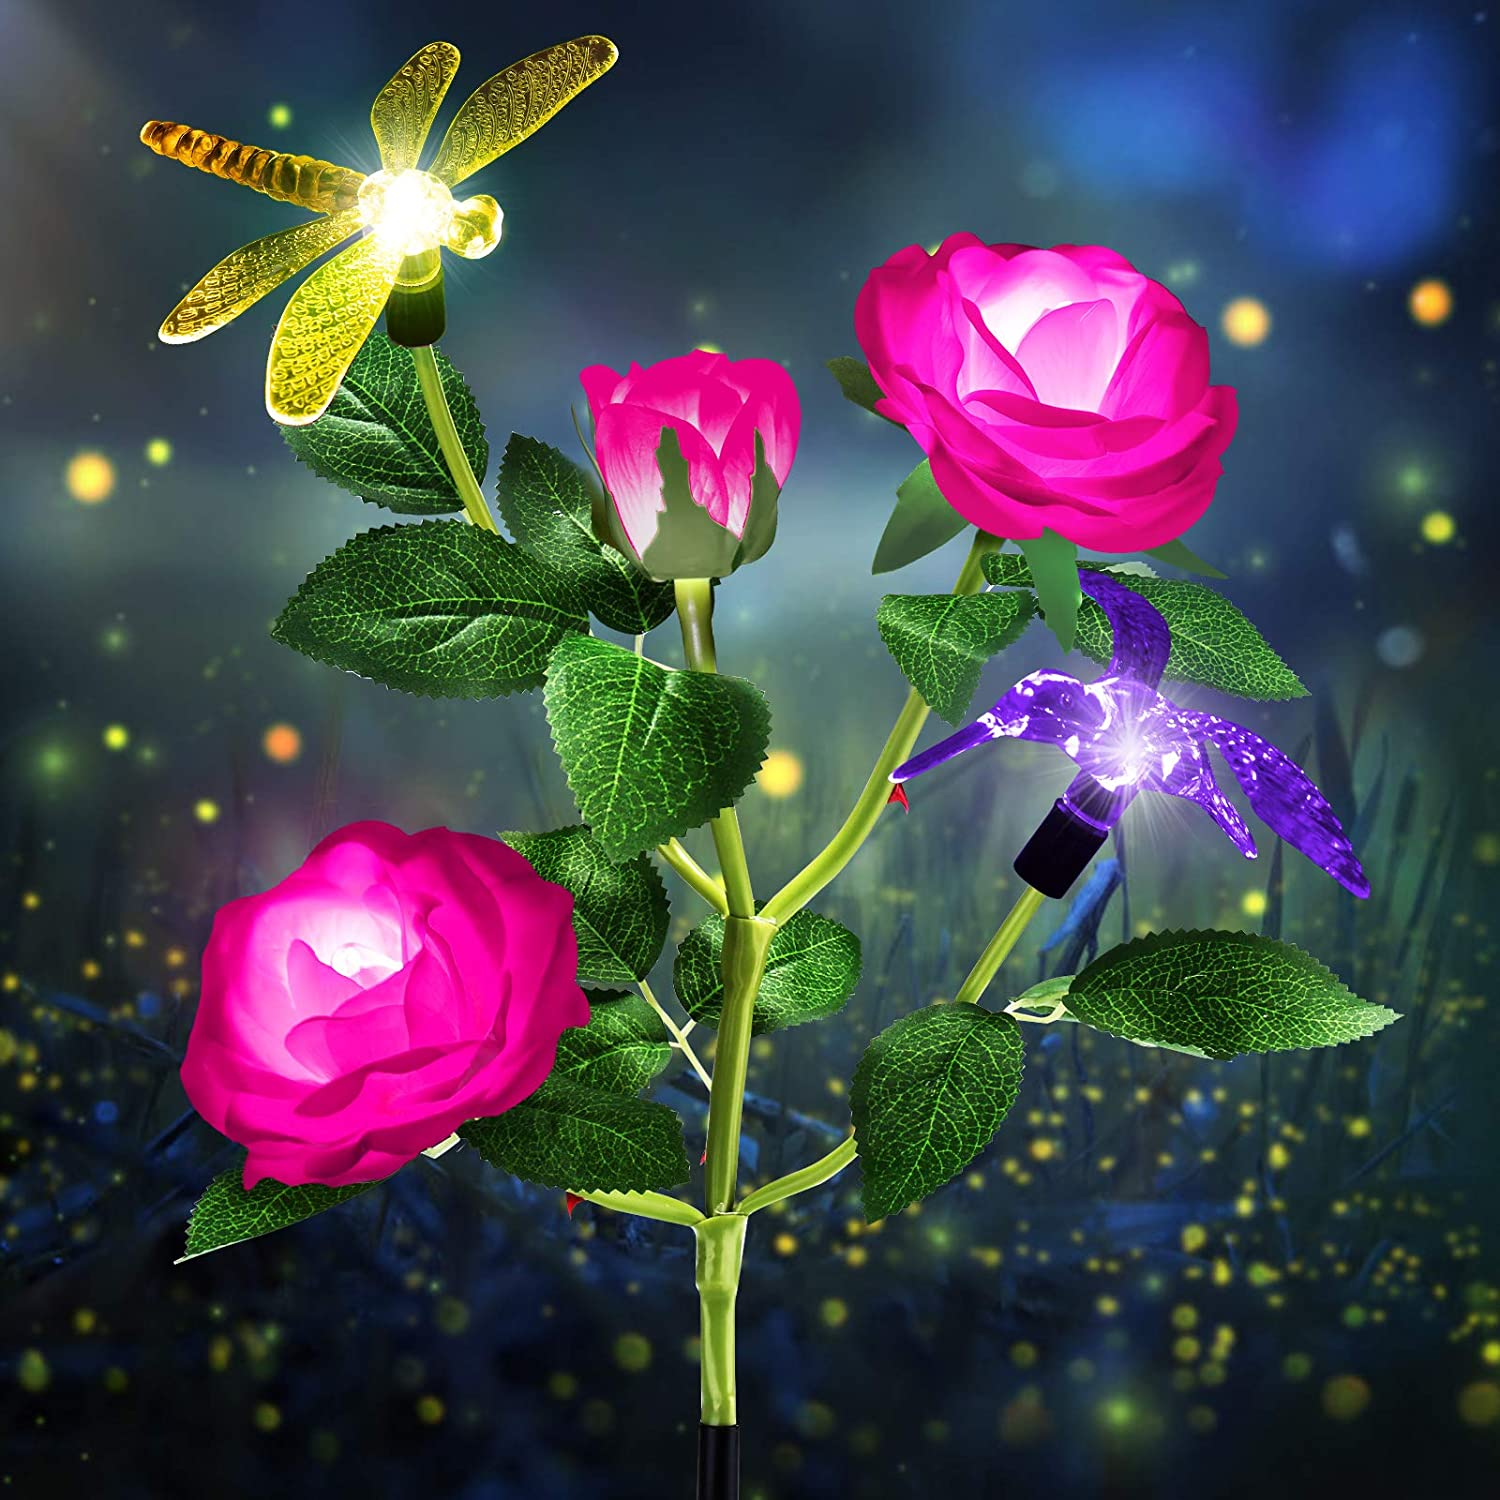 TYNLED Solar Lights Outdoor Decorative, Waterproof LED Multi-Color Changing Outdoor Solar Garden Statues Decor Lights Rose Flowers Solar Stake Lights Hummingbird Dragonfly for Garden Yard (Pink)